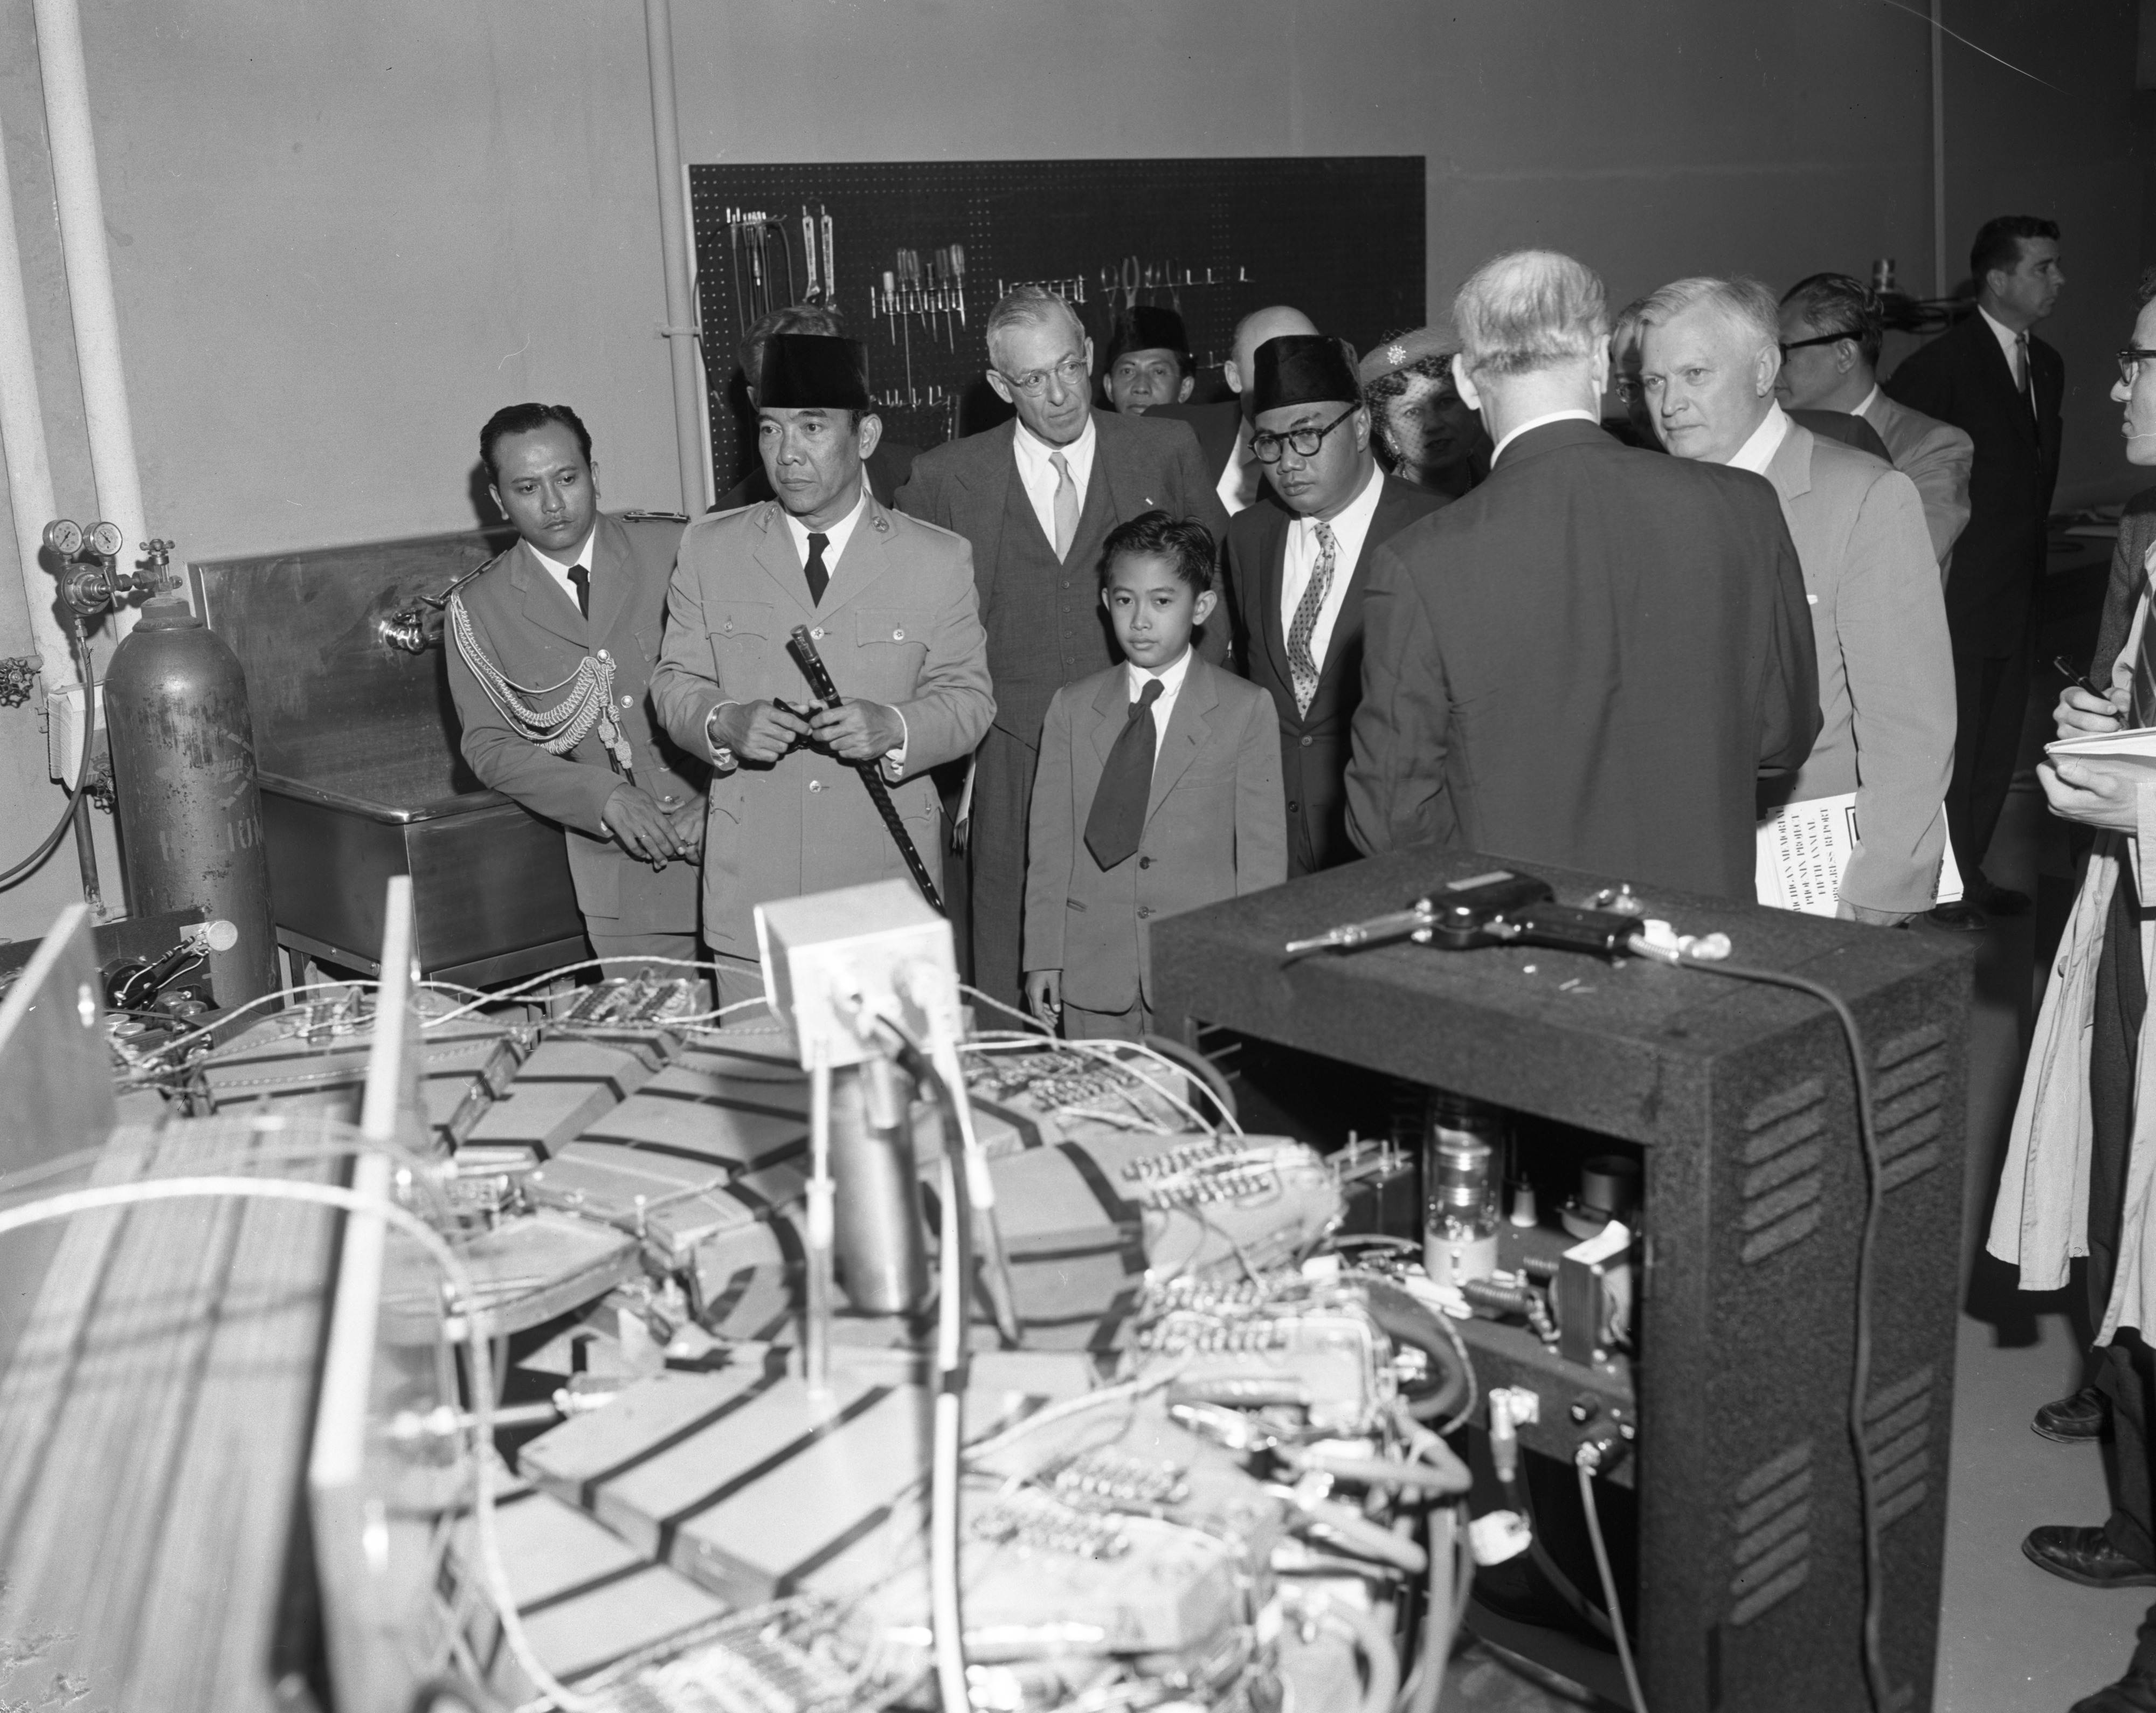 Dr. Sukarno, president of Indonesia, and his son Mohammed Guntur, visit the University of Michigan, May 1956 image